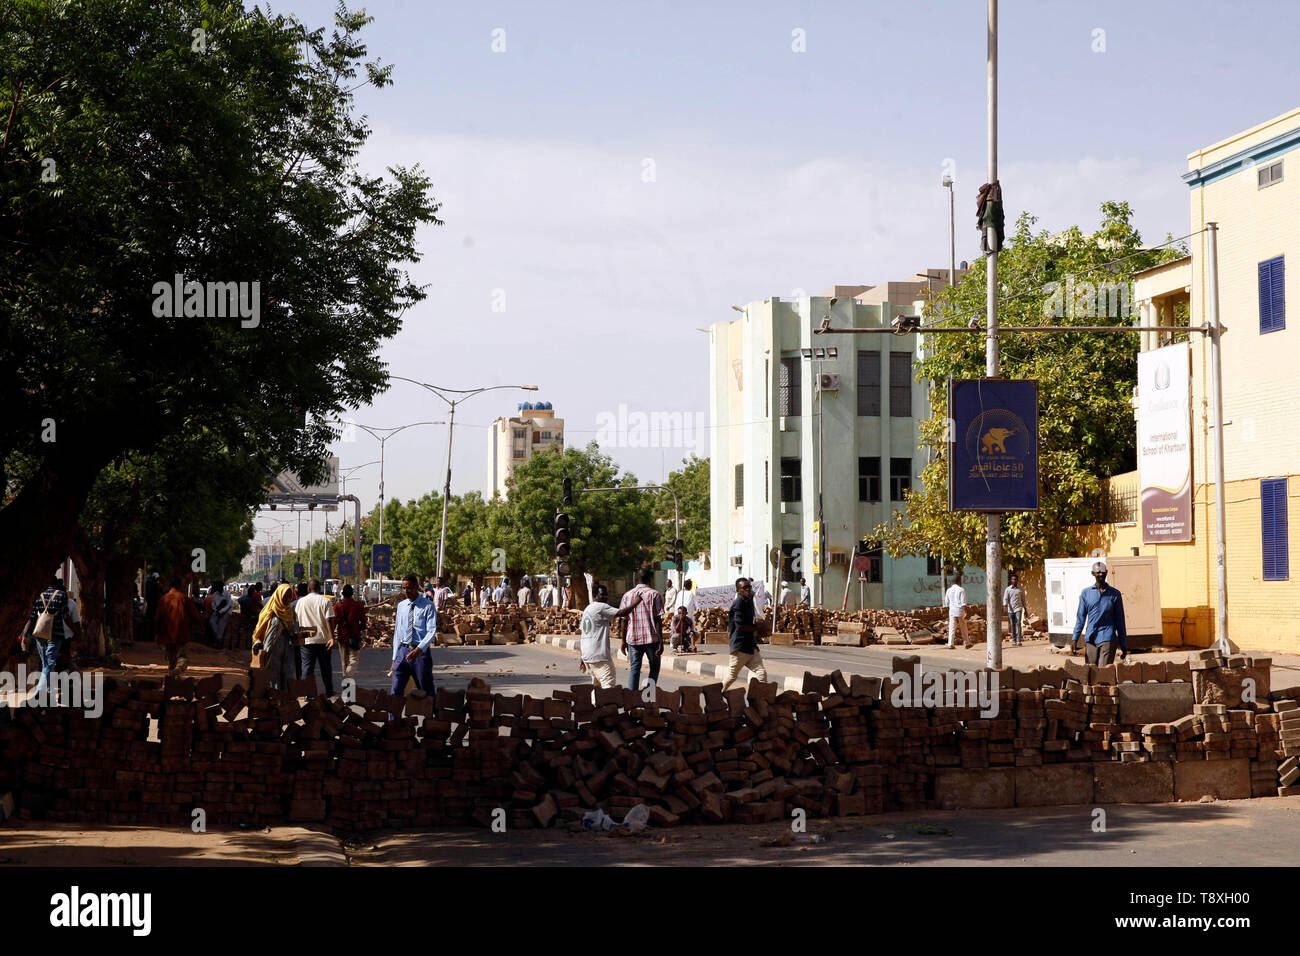 Khartoum, Sudan. 15th May, 2019. Protesters expand the sit-in area in front of the army's general headquarters during a protest in Khartoum, Sudan, May 15, 2019. Credit: Mohamed Khidir/Xinhua/Alamy Live News - Stock Image